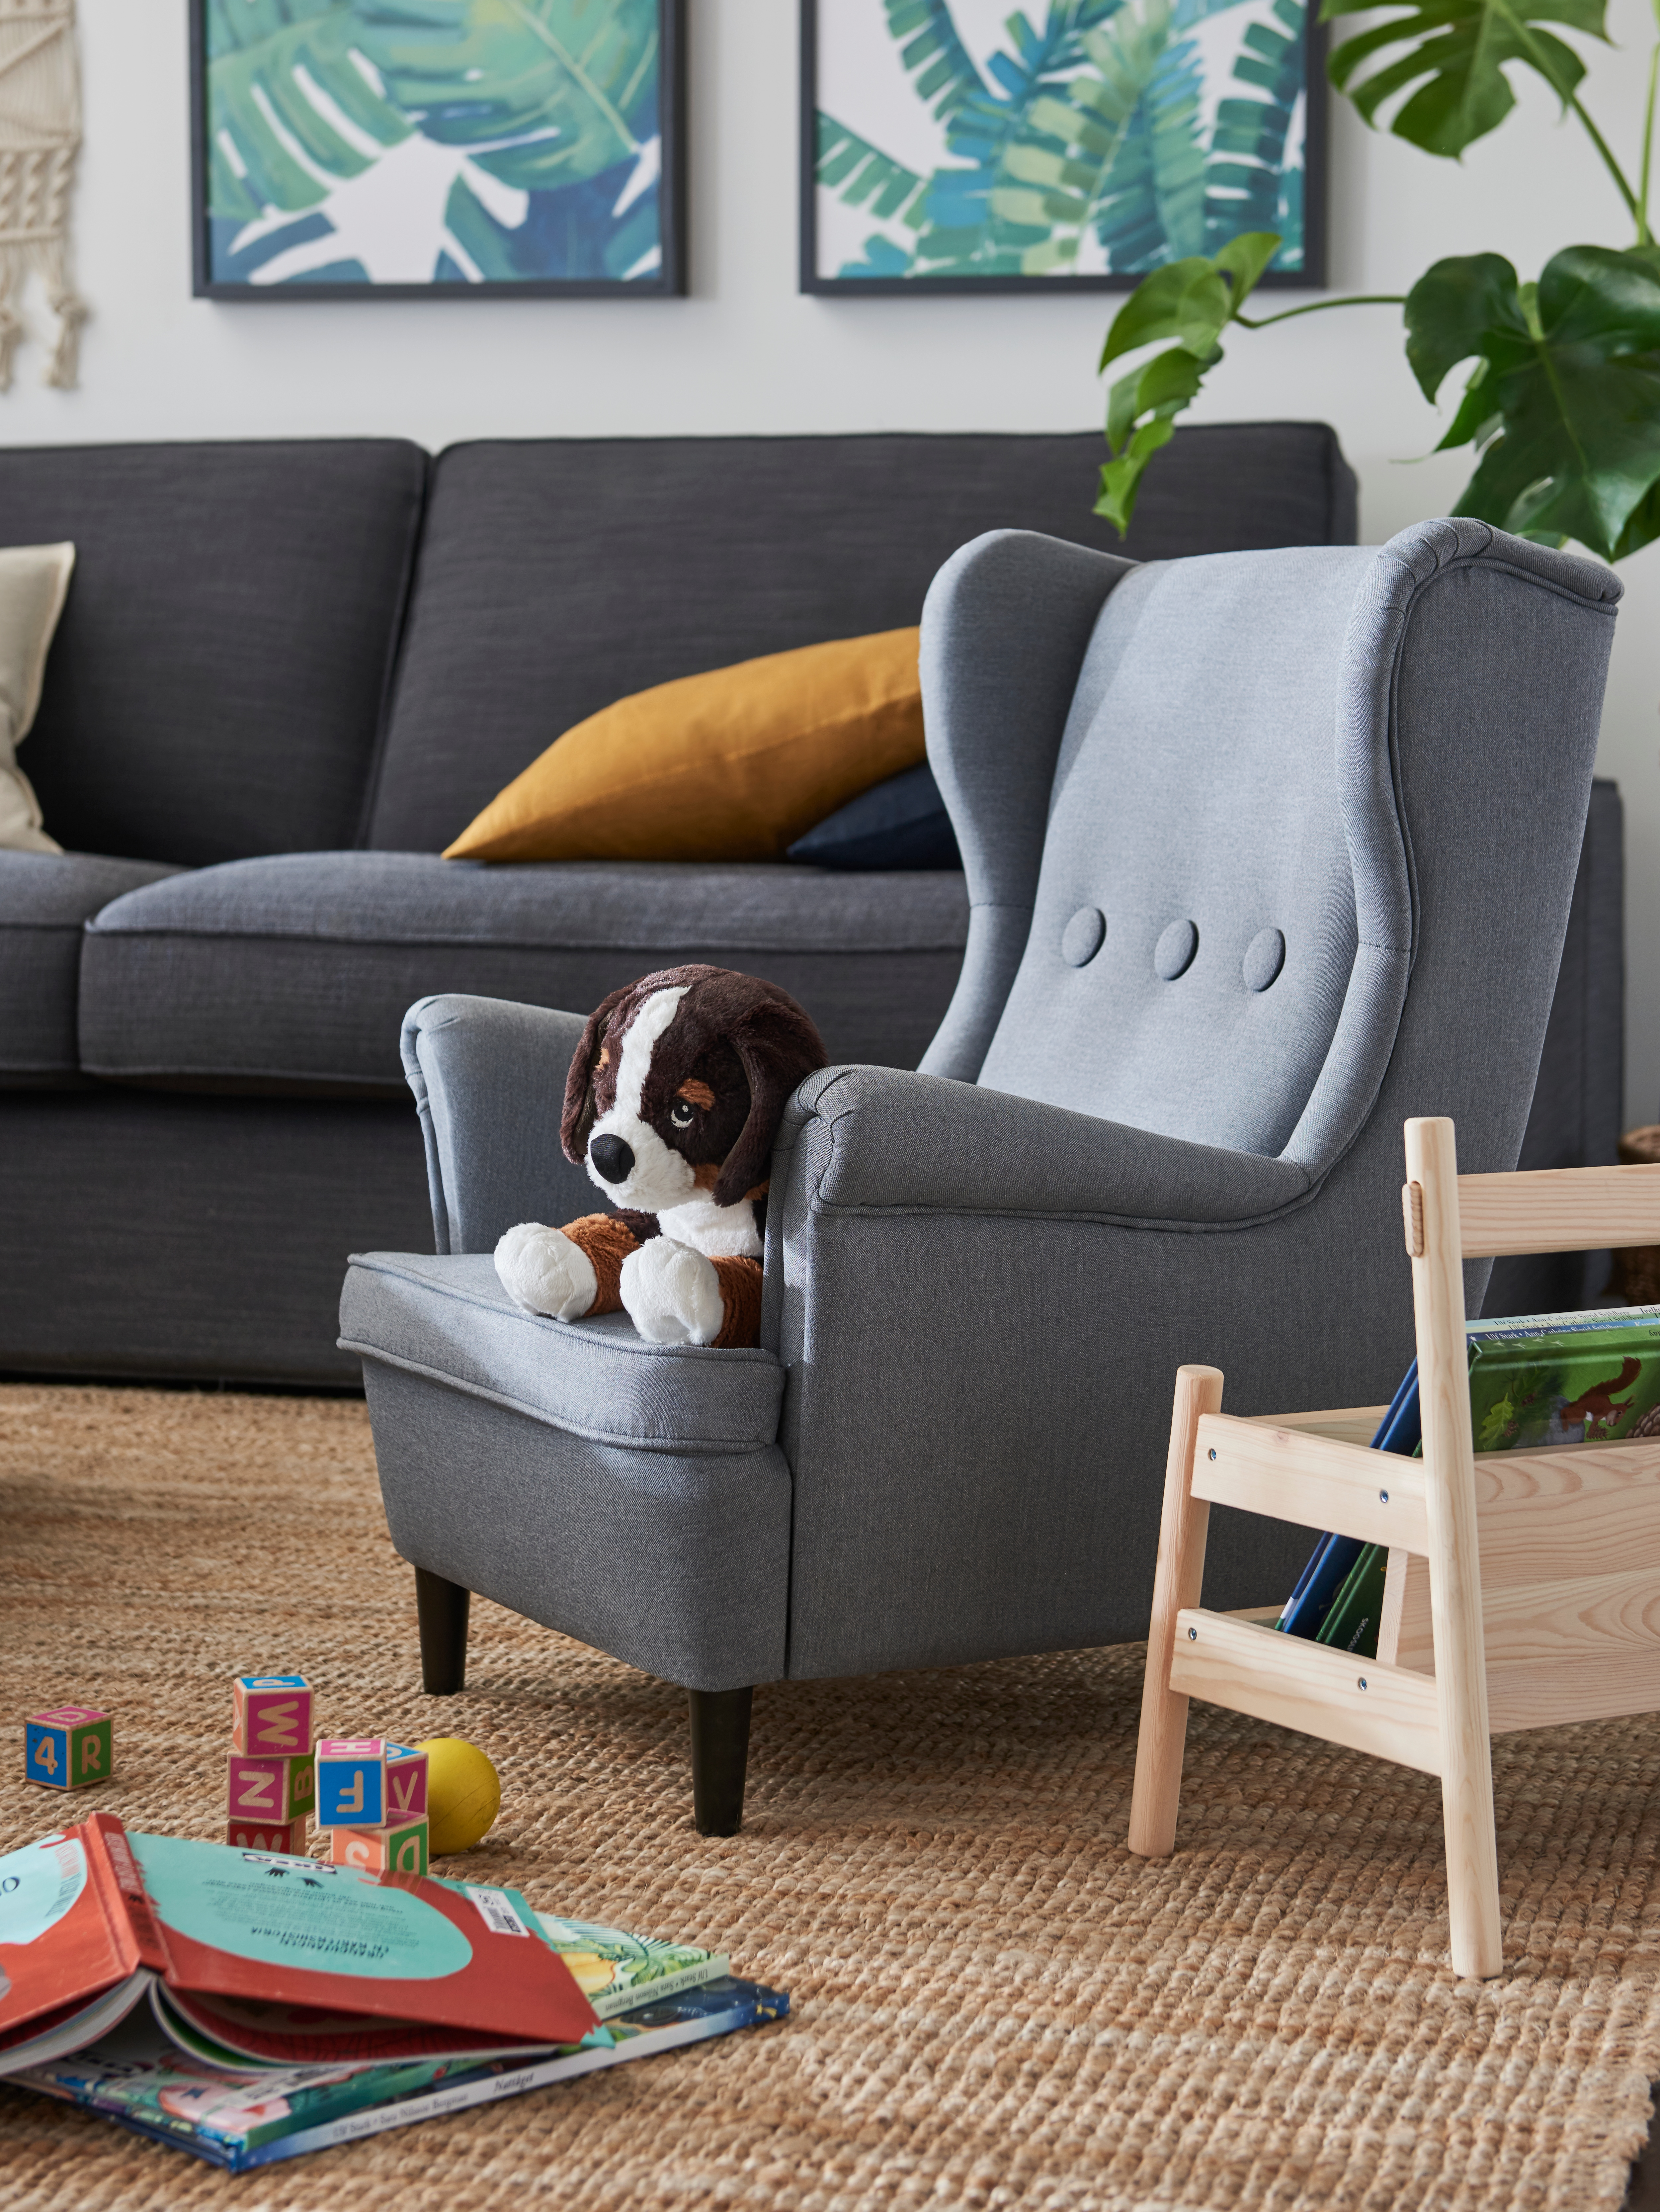 Living room with children's armchair, soft toy, three-seat sofa, book display, book, flat-woven rug, frames, green plants.